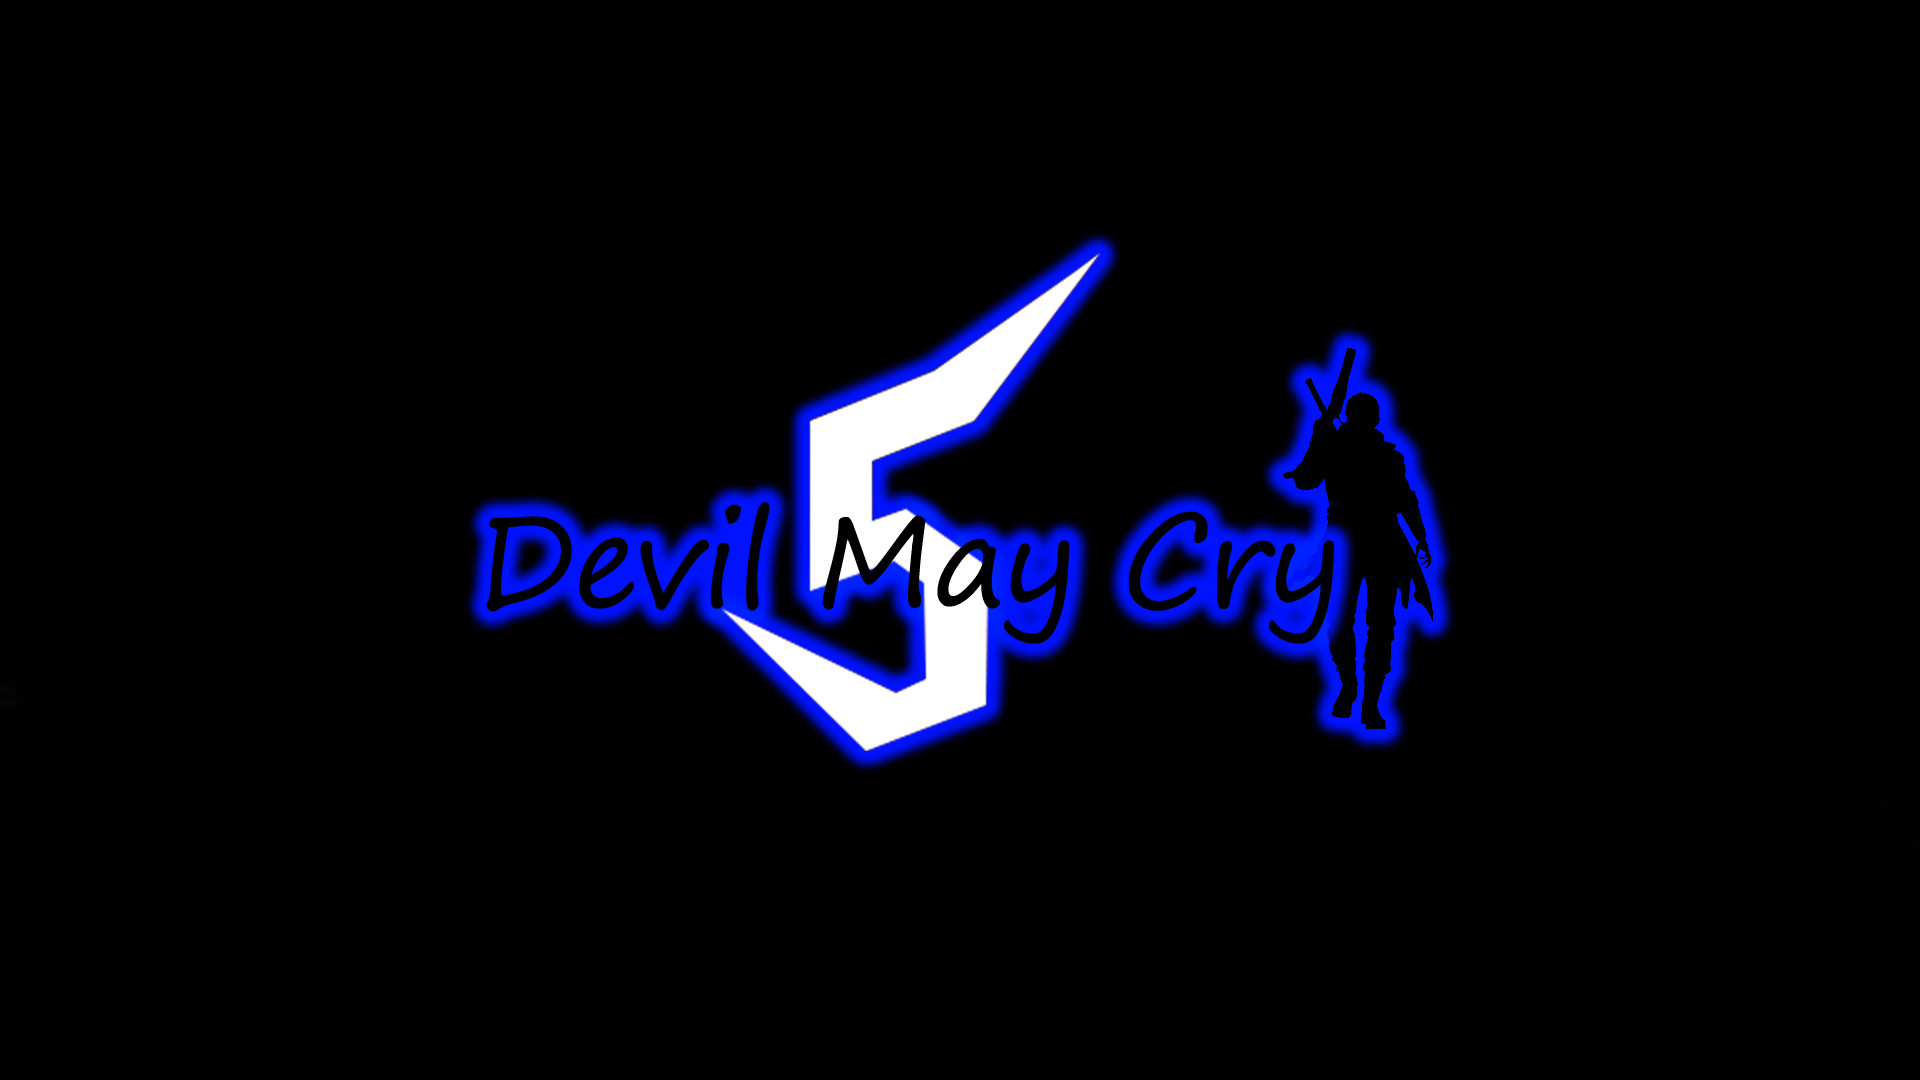 hight resolution of devil may cry 5 logo on the old way